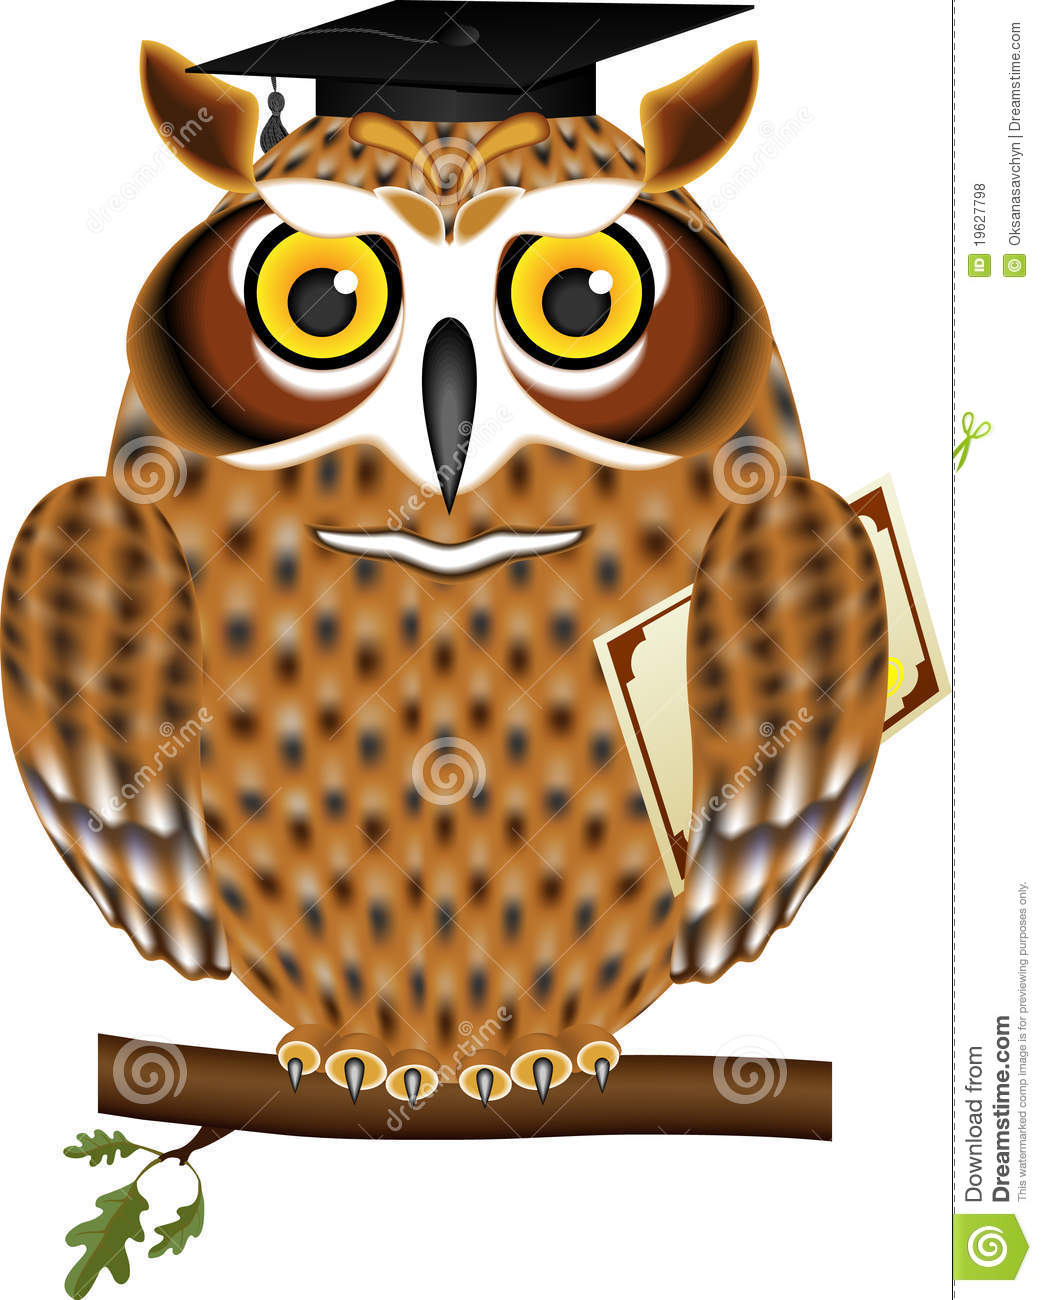 Owl with Mortar Board